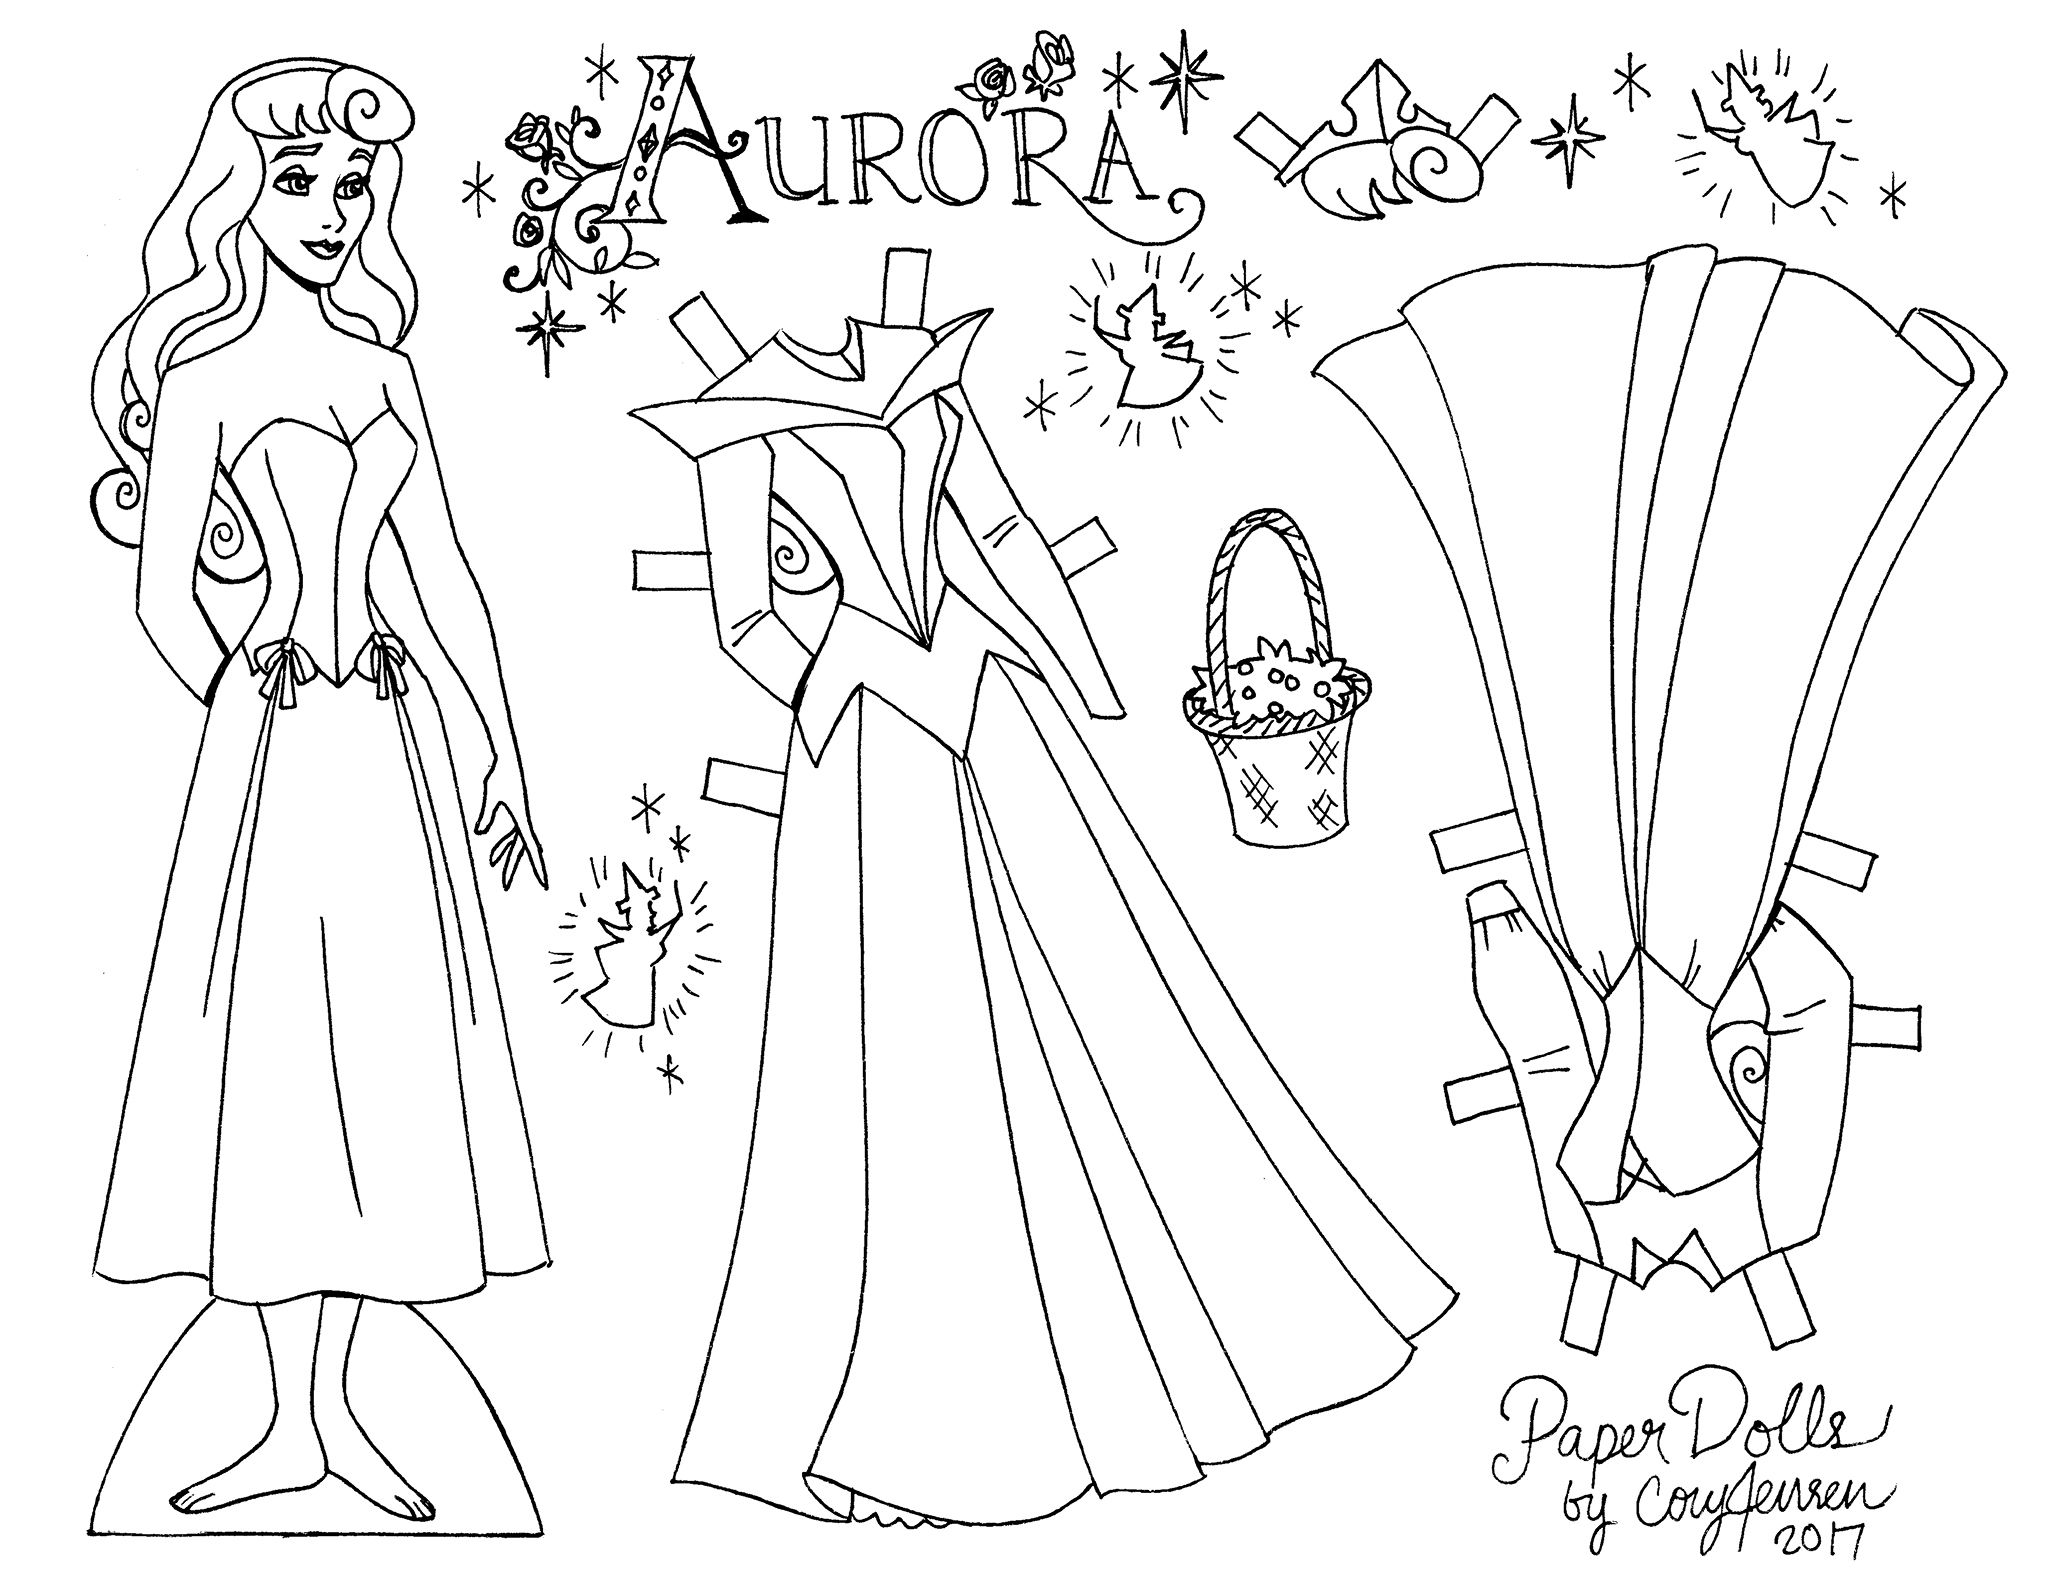 Image May Contain Drawing Paper Dolls Book Paper Dolls Princess Paper Dolls